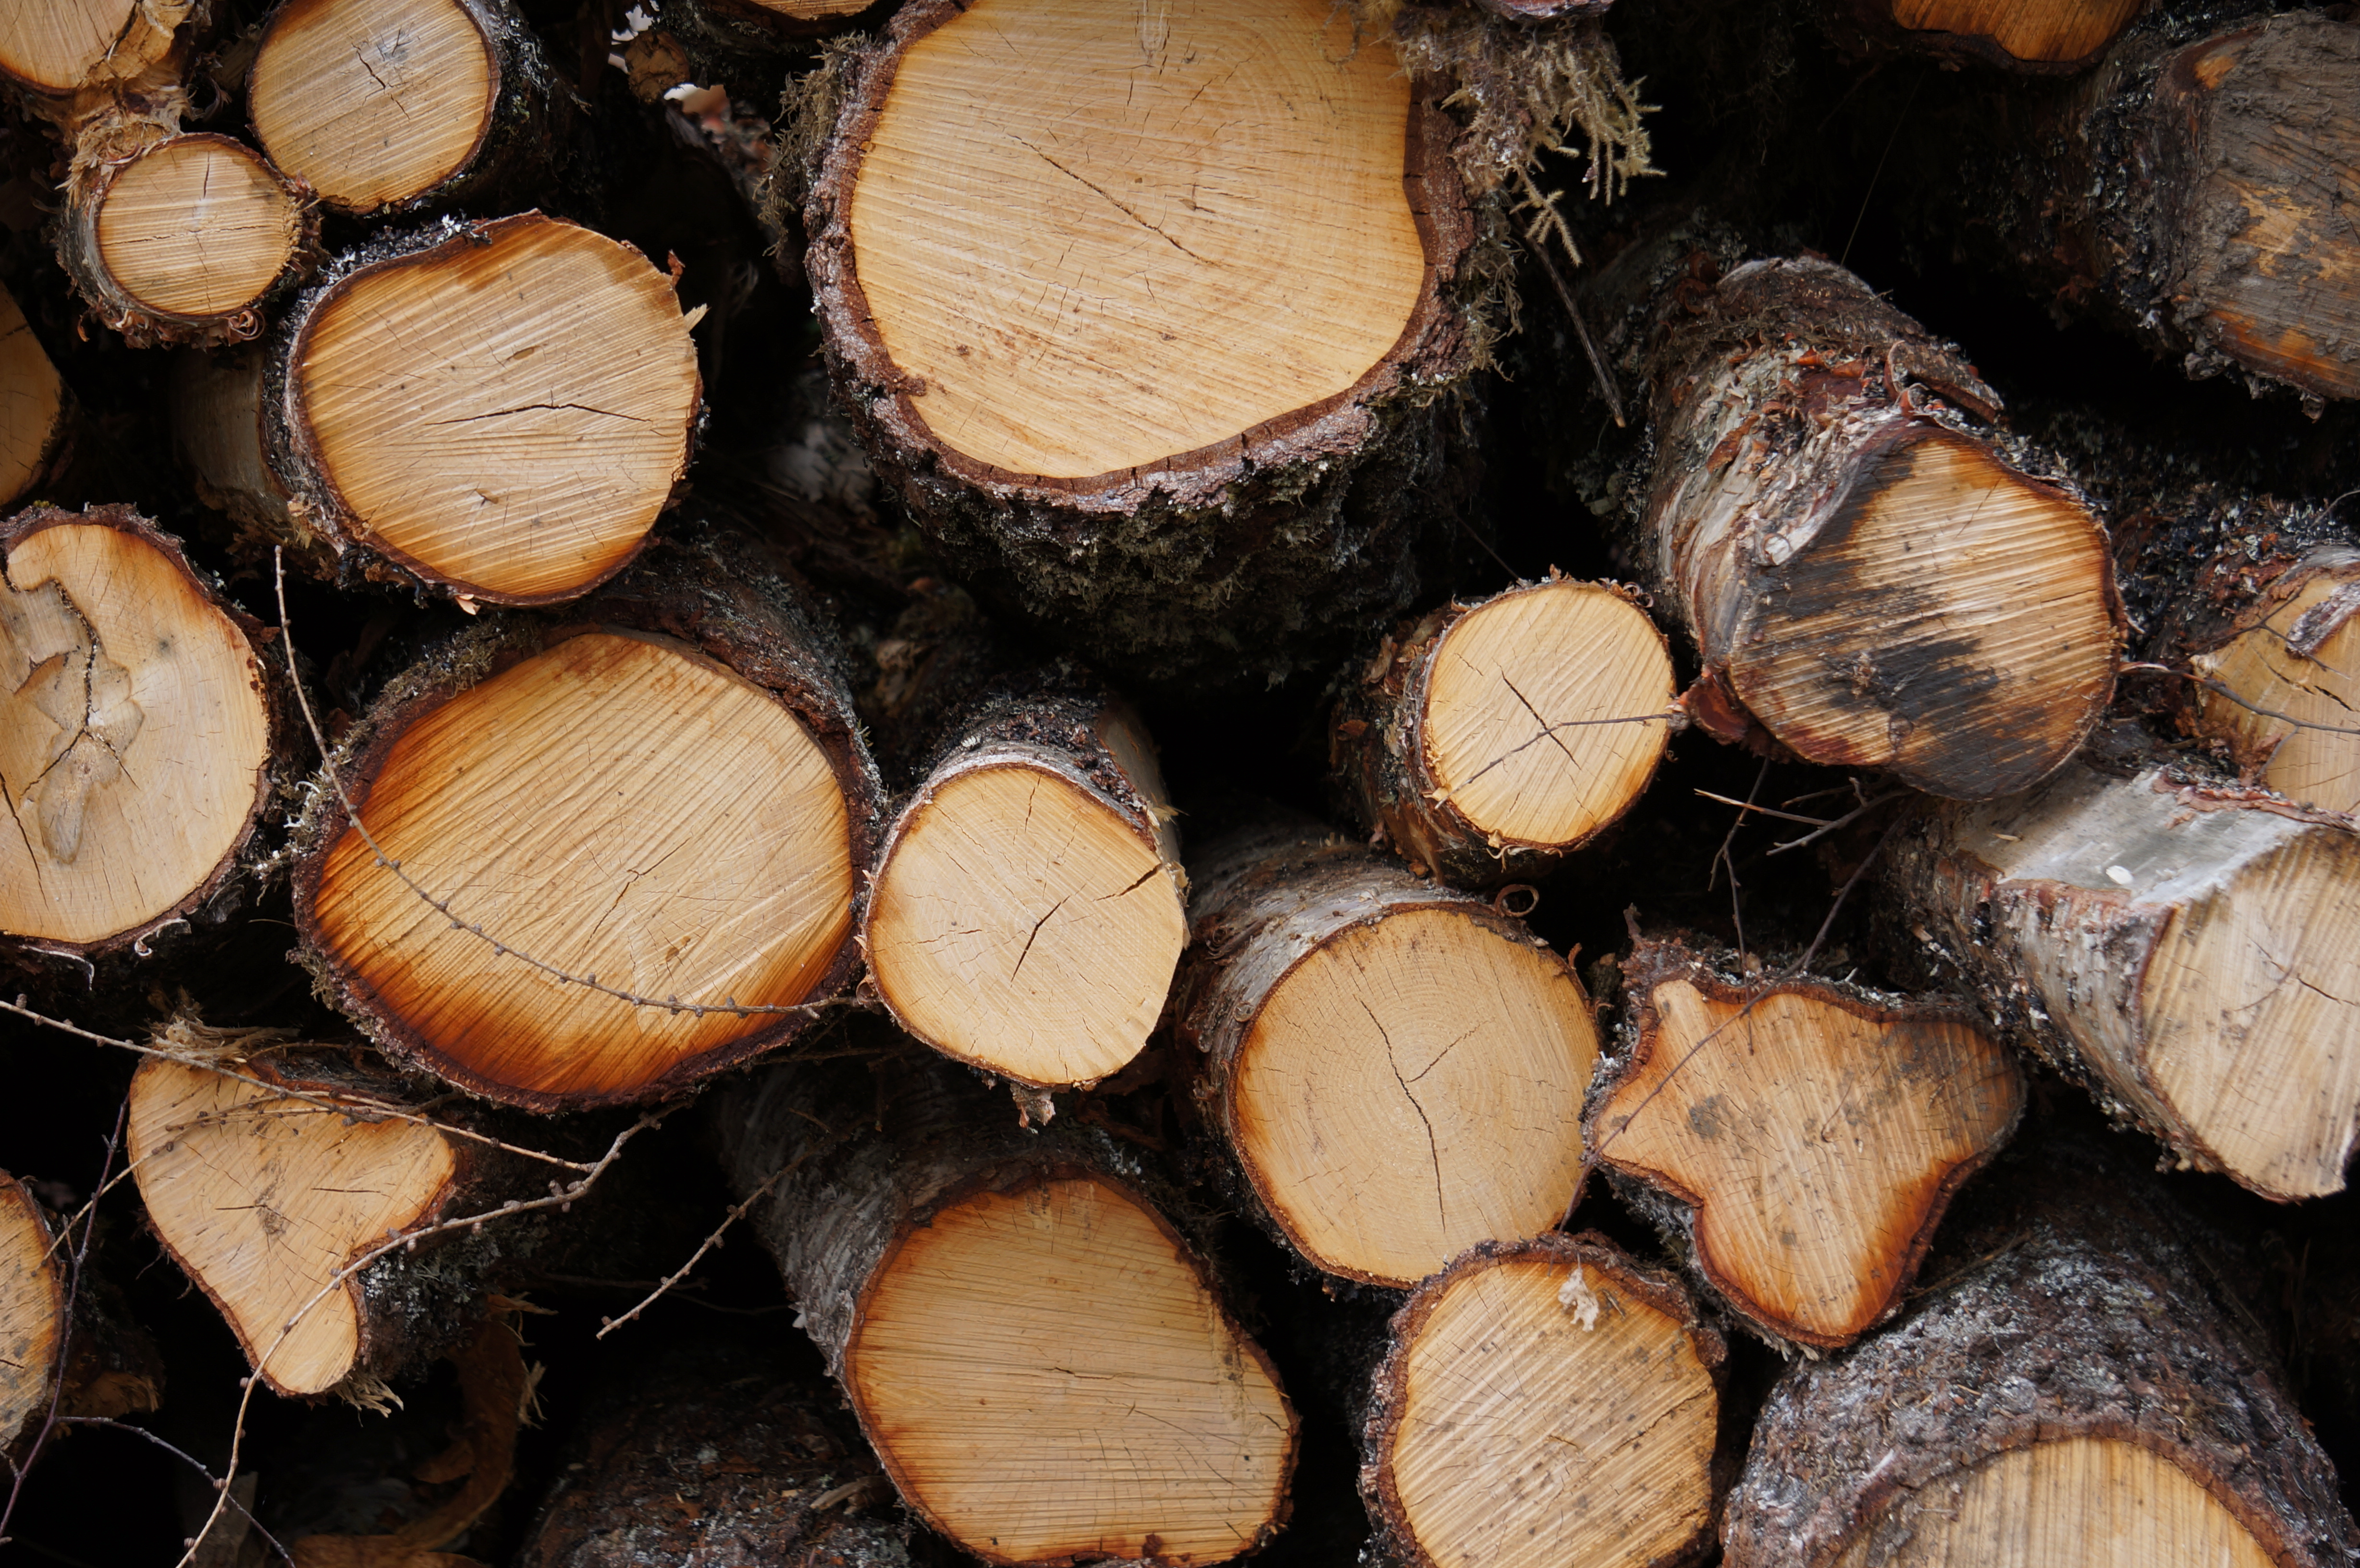 Close-up image of a stack of logs.